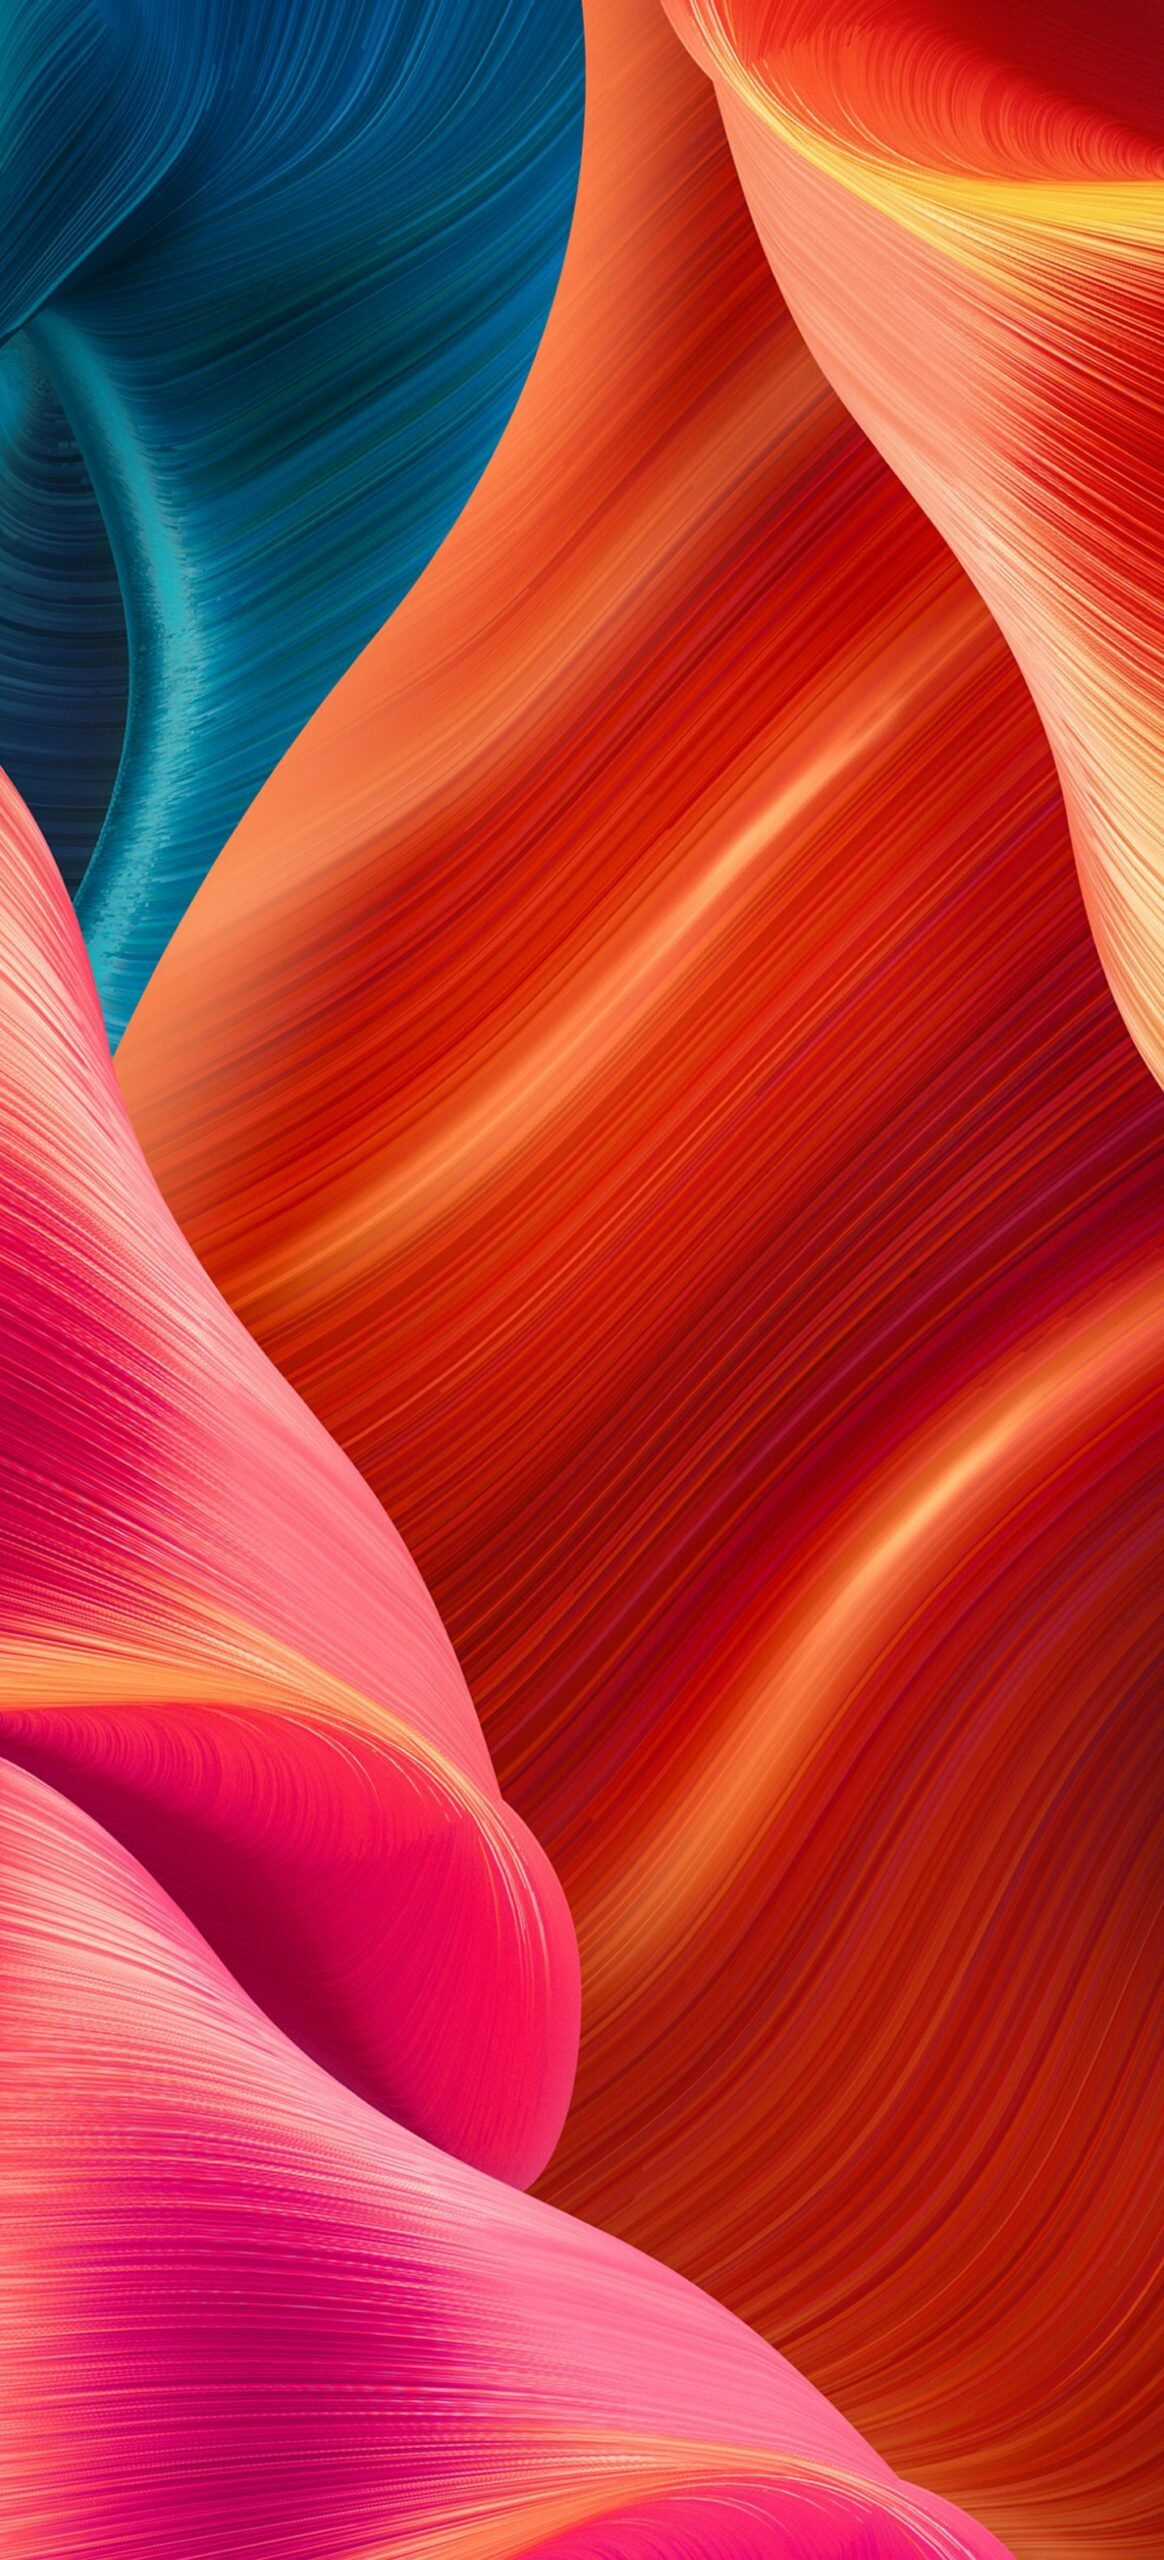 Download Oppo Find X2 Pro Wallpapers 4k Resolution